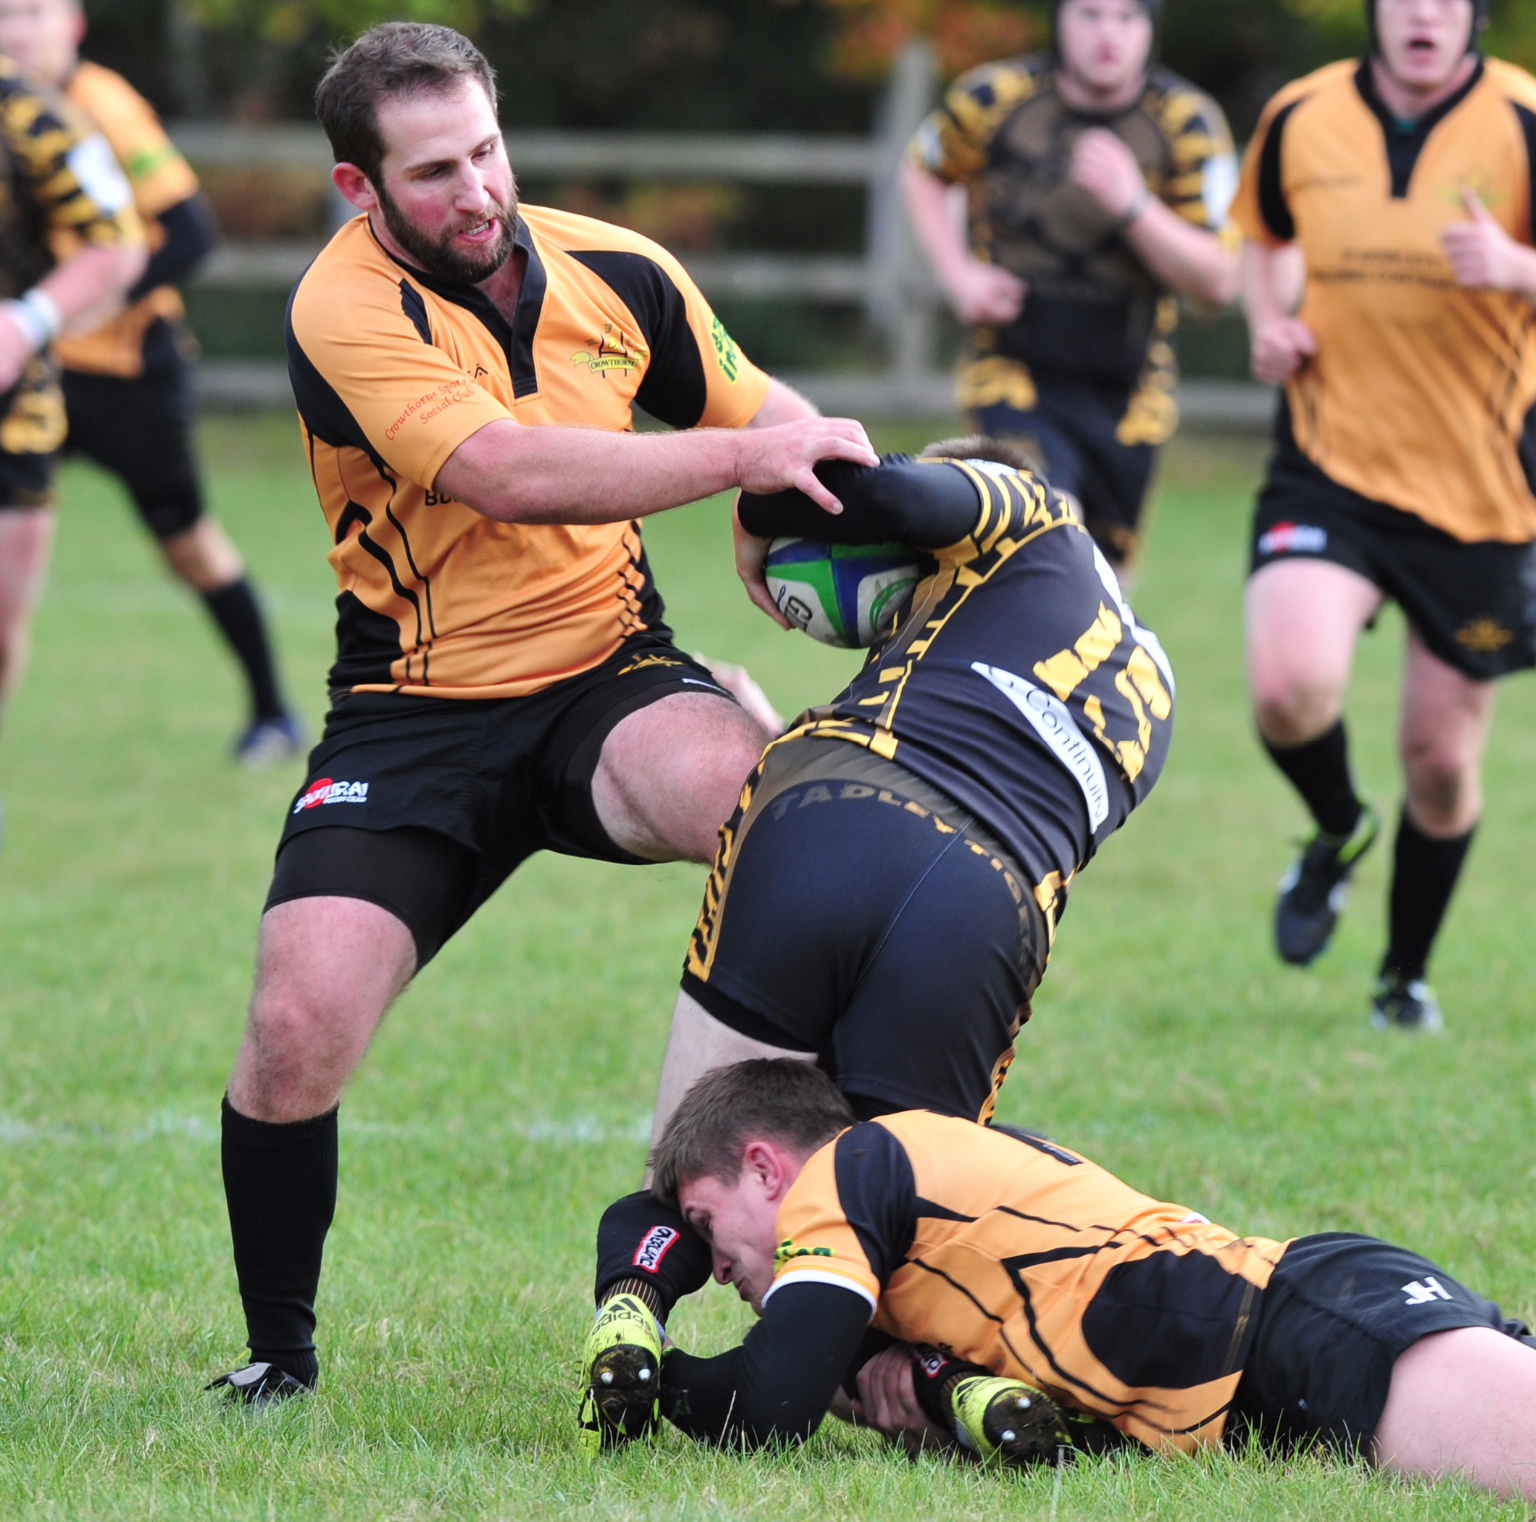 Crowthorne's Sam Short makes a tackle against Tadley    Picture by Dave Schofield